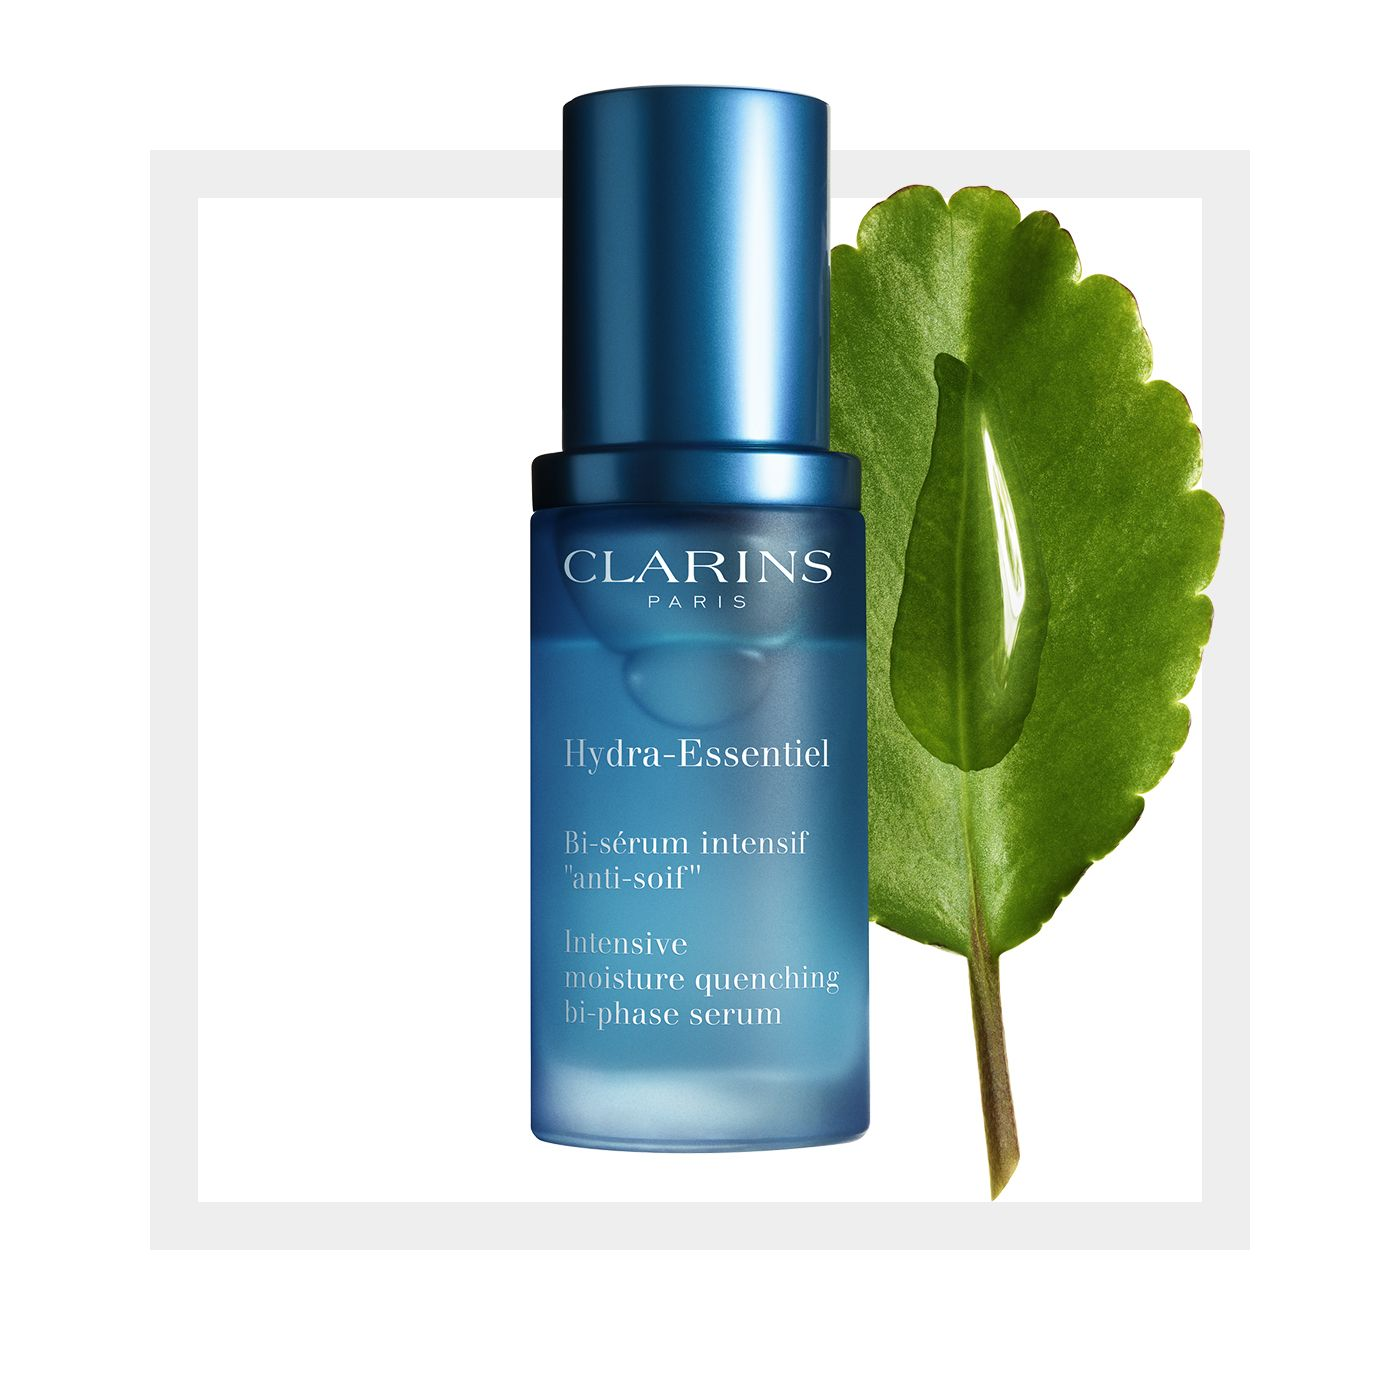 Hydra-Essentiel Bi-phase Serum by Clarins #5